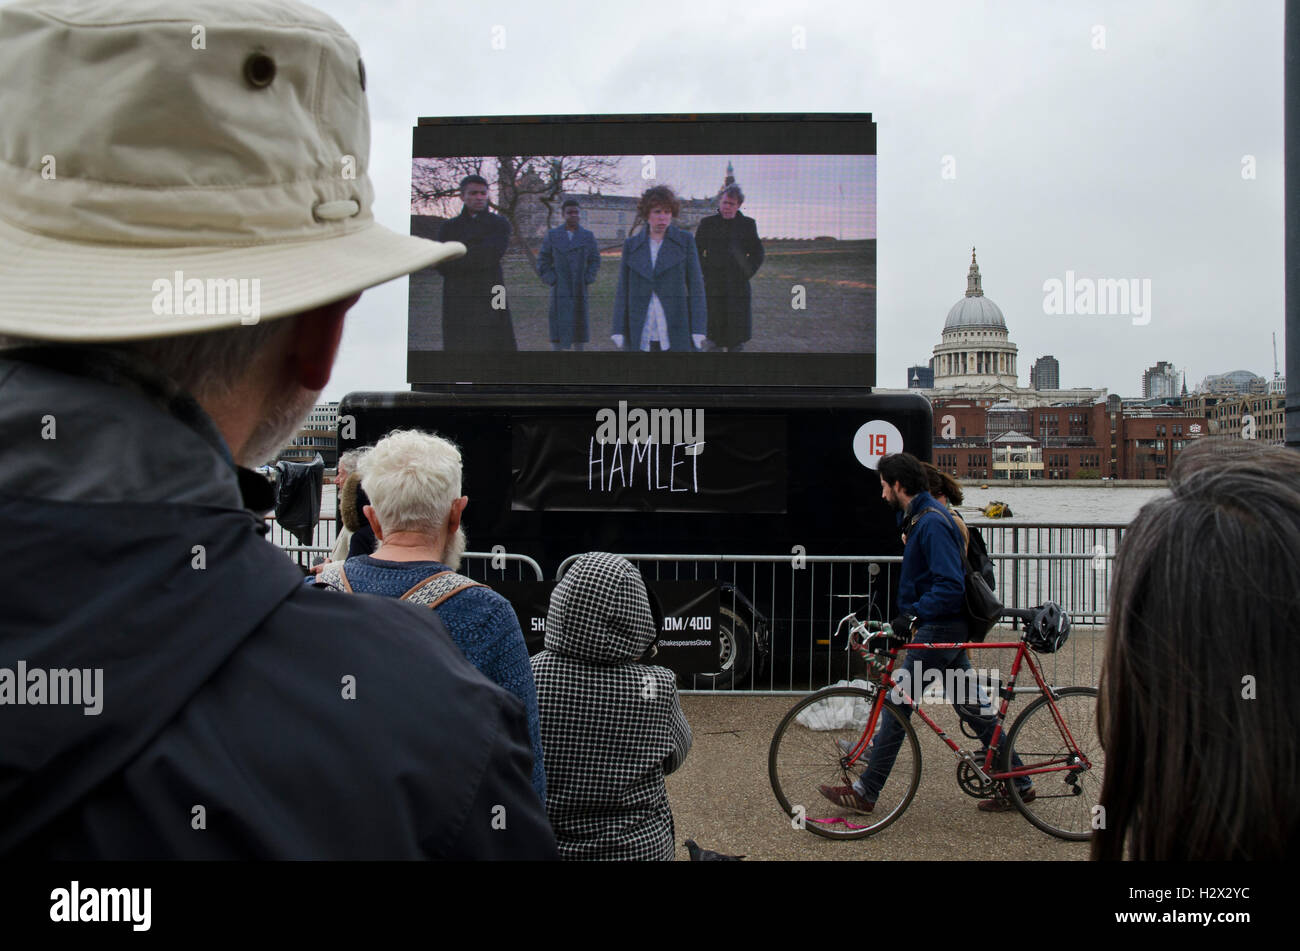 William Shakespeare`s plays in opposite St Paul cathedral / crowd watching Hamlet in live performance - Stock Image